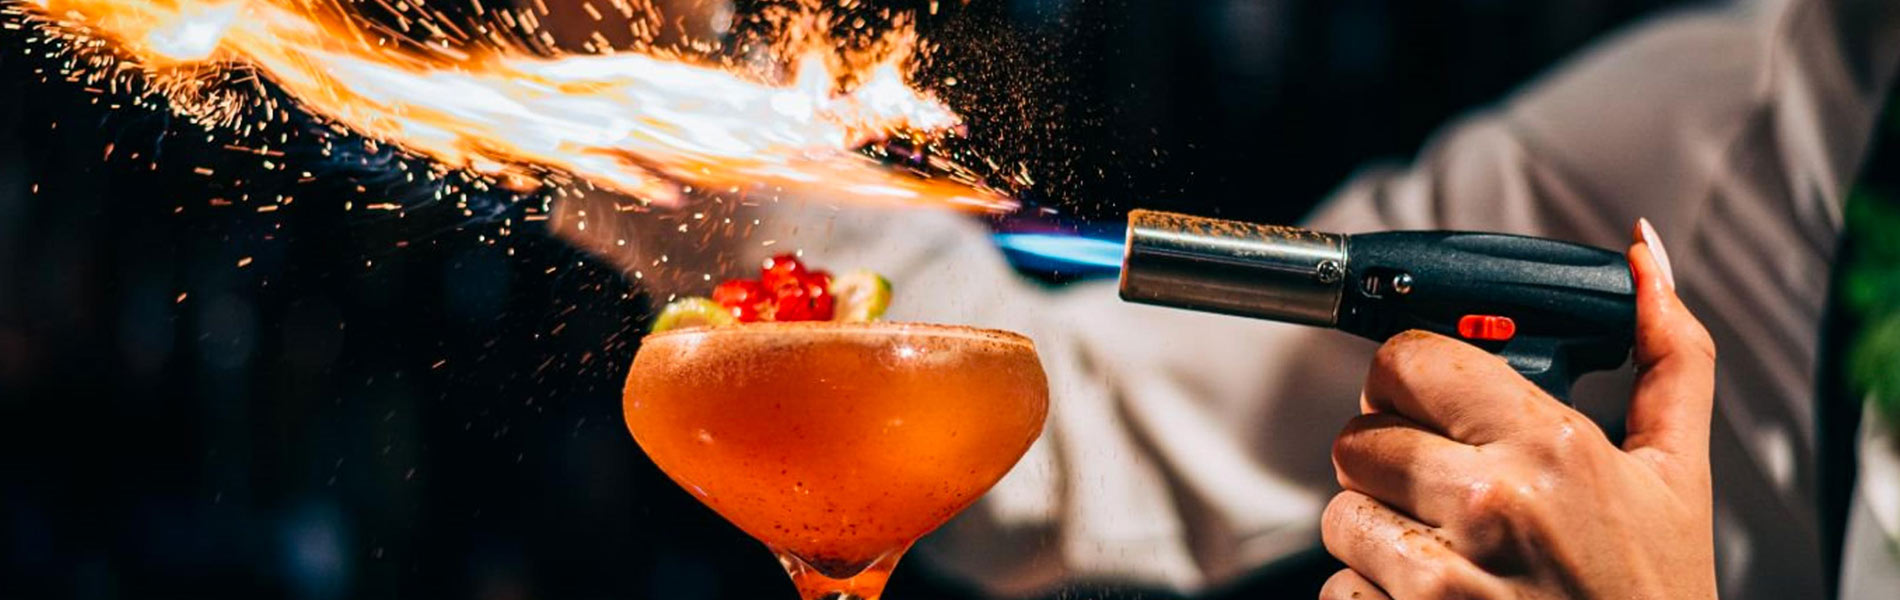 Bartender with a torch lighting a cocktail on fire